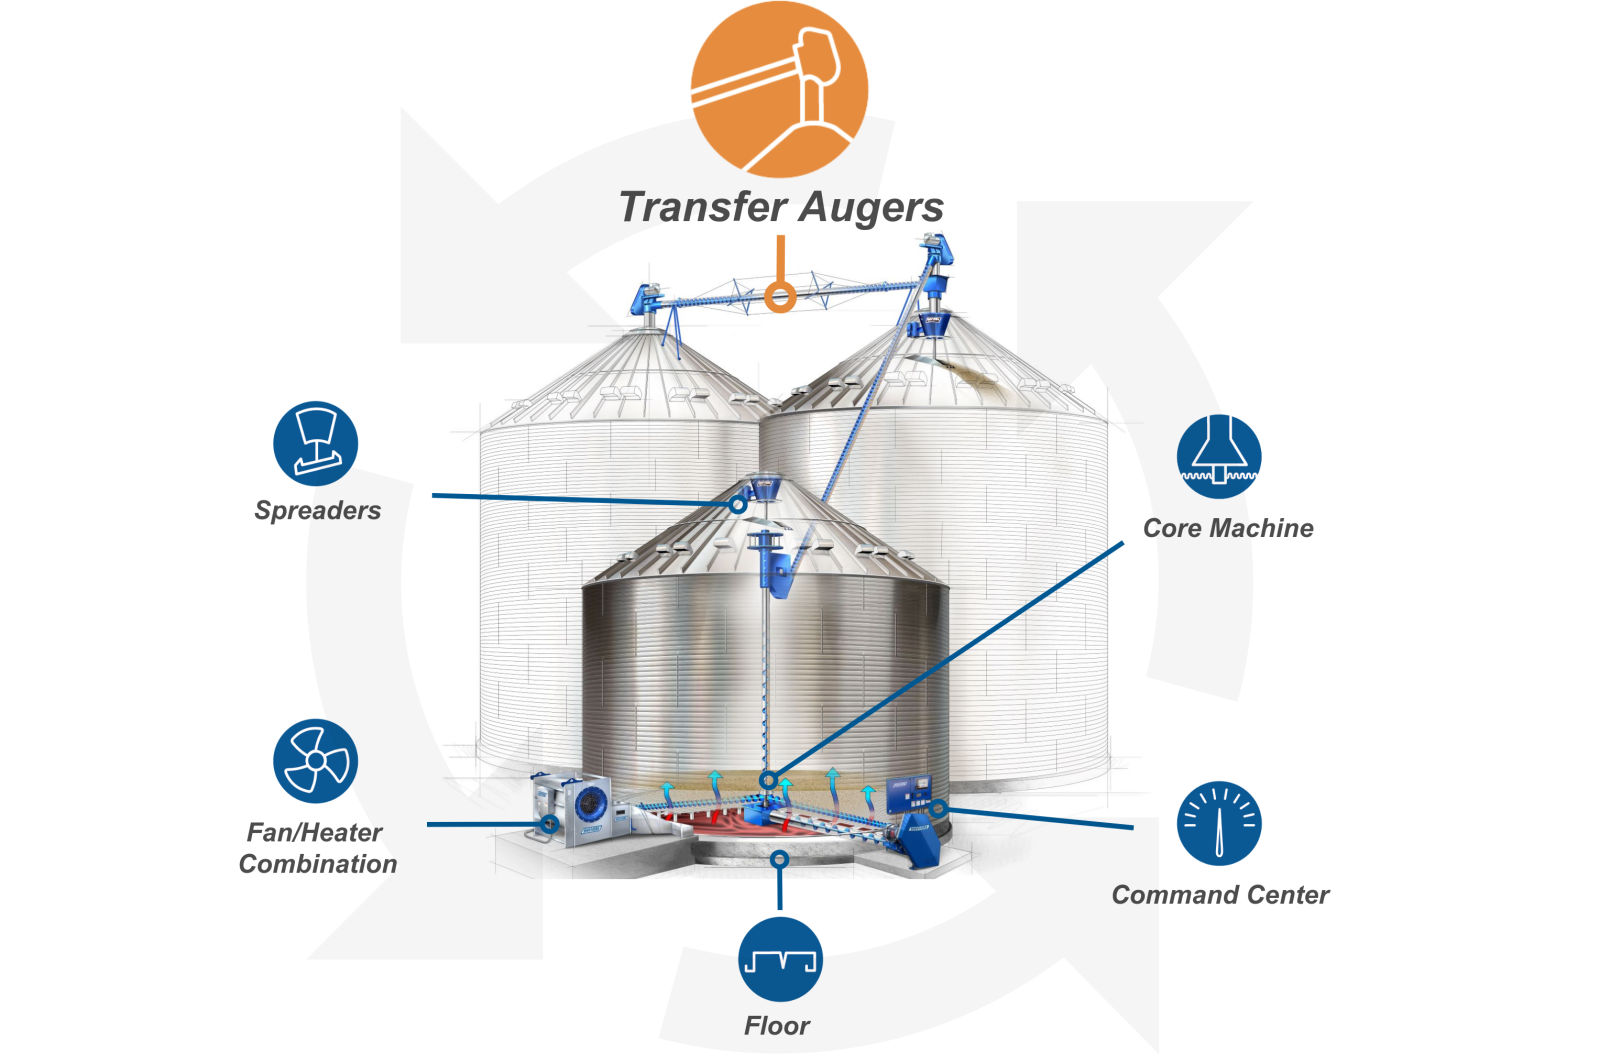 Transfer Augers Component Roadmap Graphic